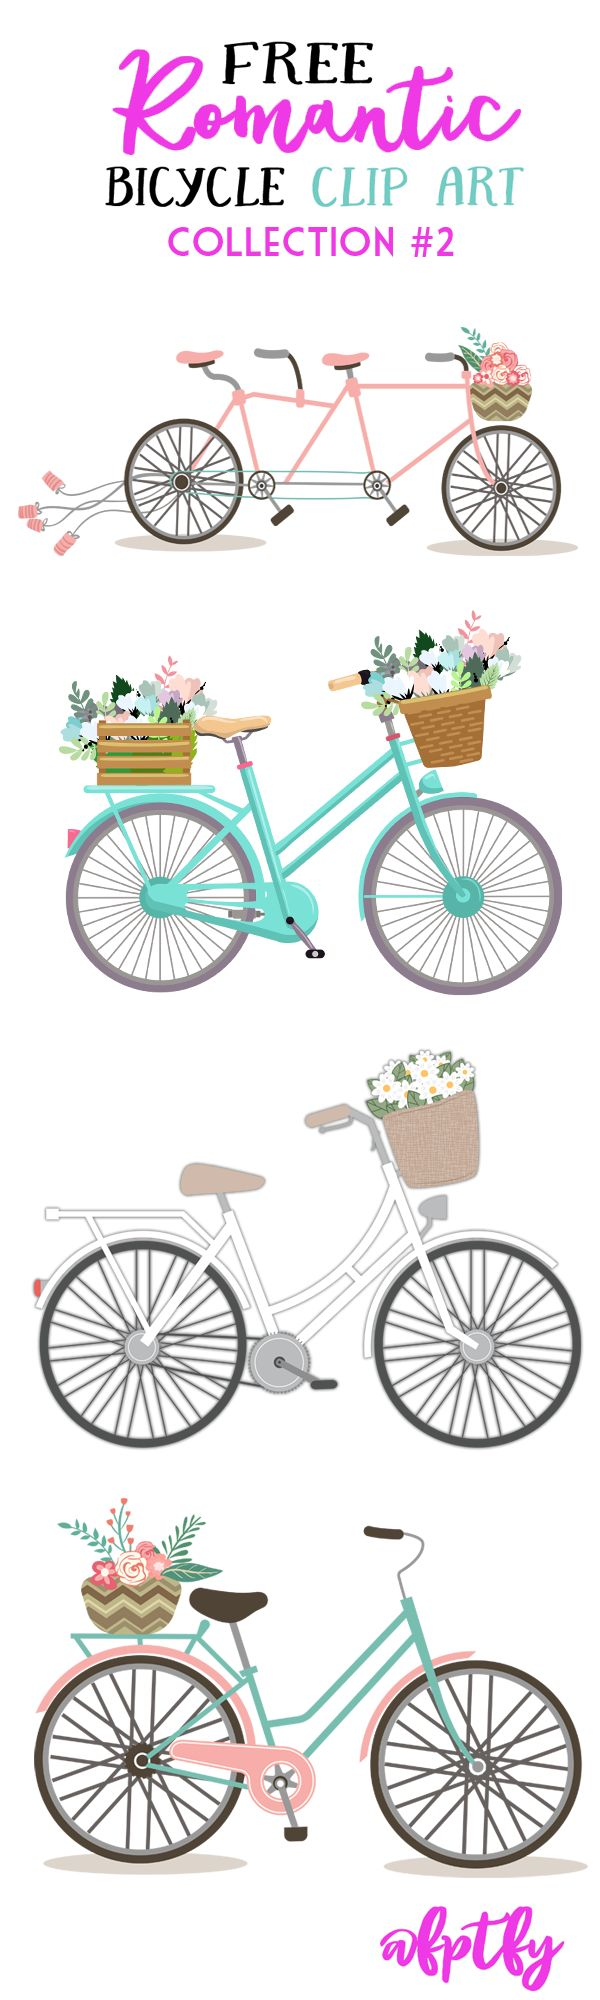 free-romantic-bicycle-clip-art-set2-fptfy-a